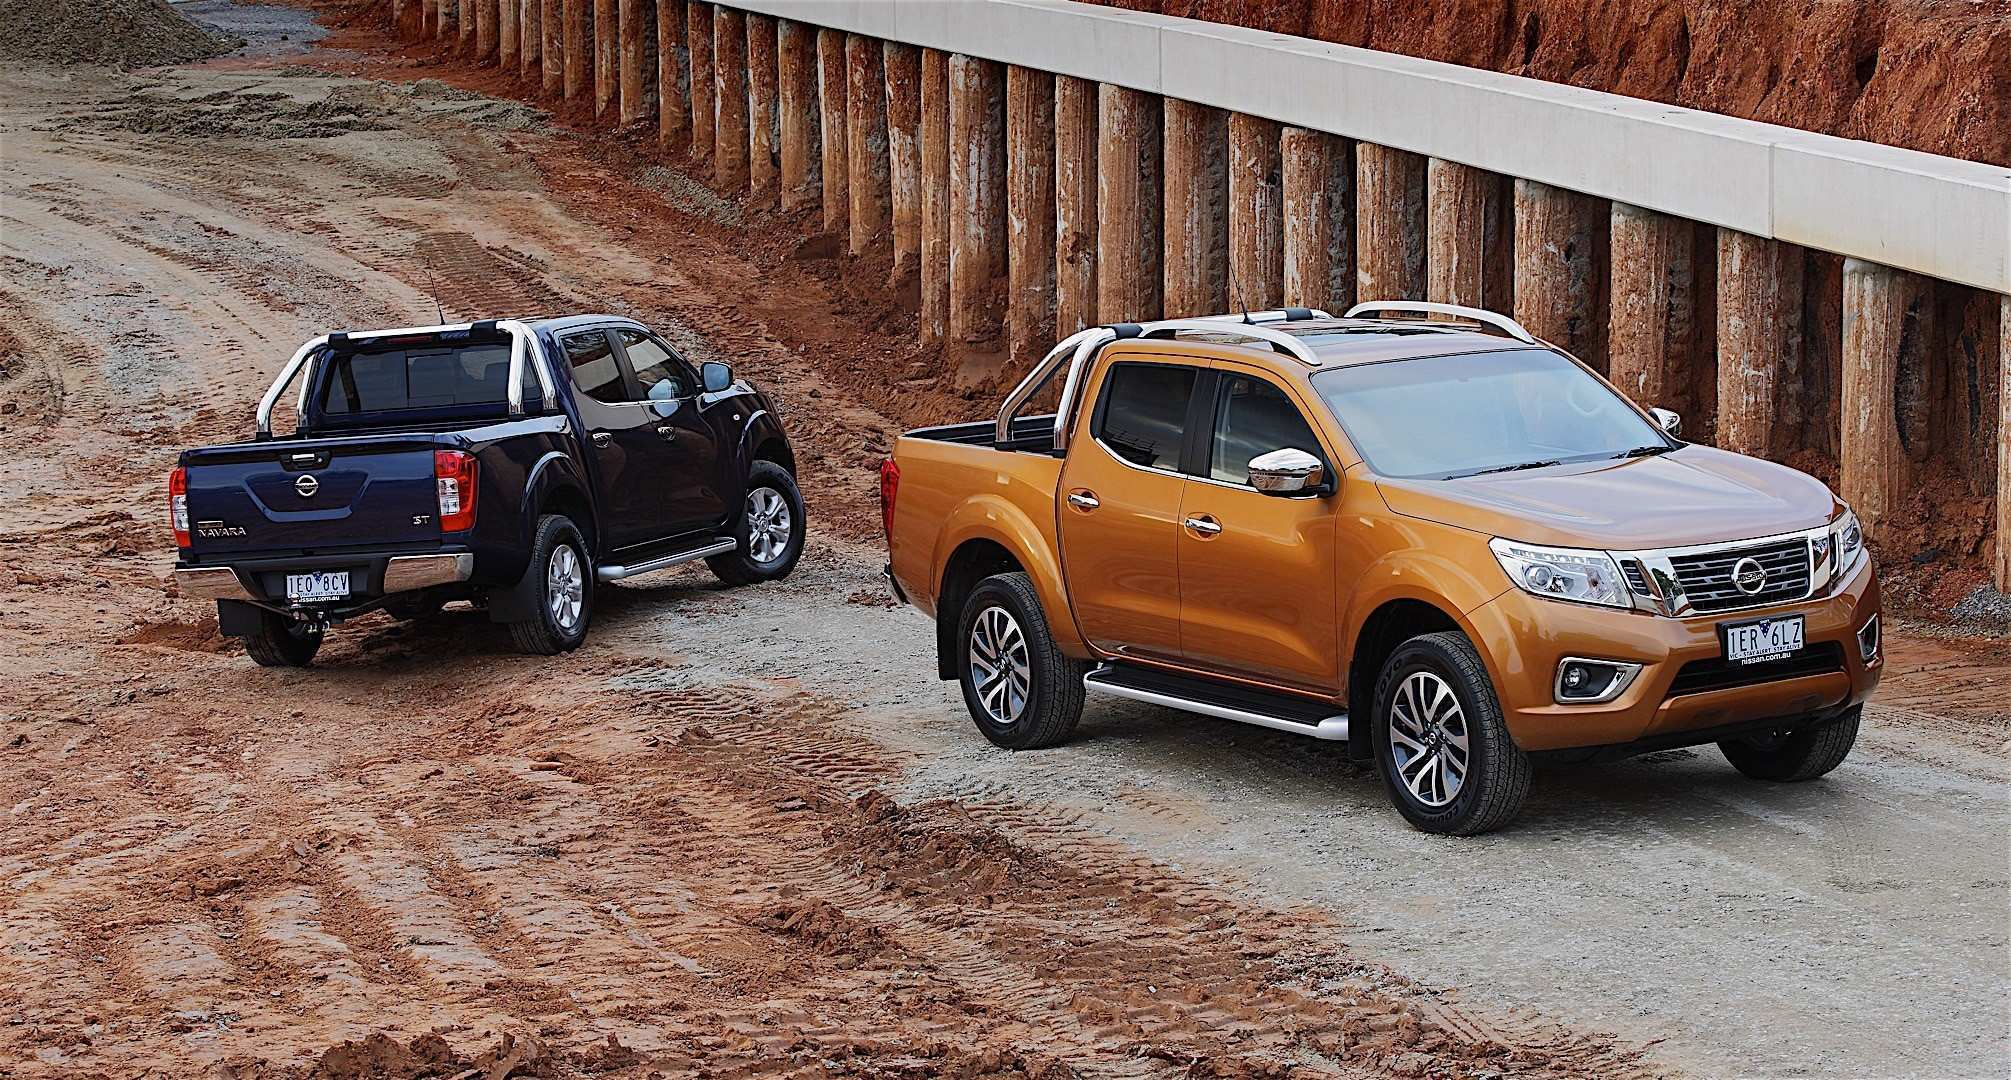 38 Gallery of 2019 Nissan Frontier Specs Ratings for 2019 Nissan Frontier Specs